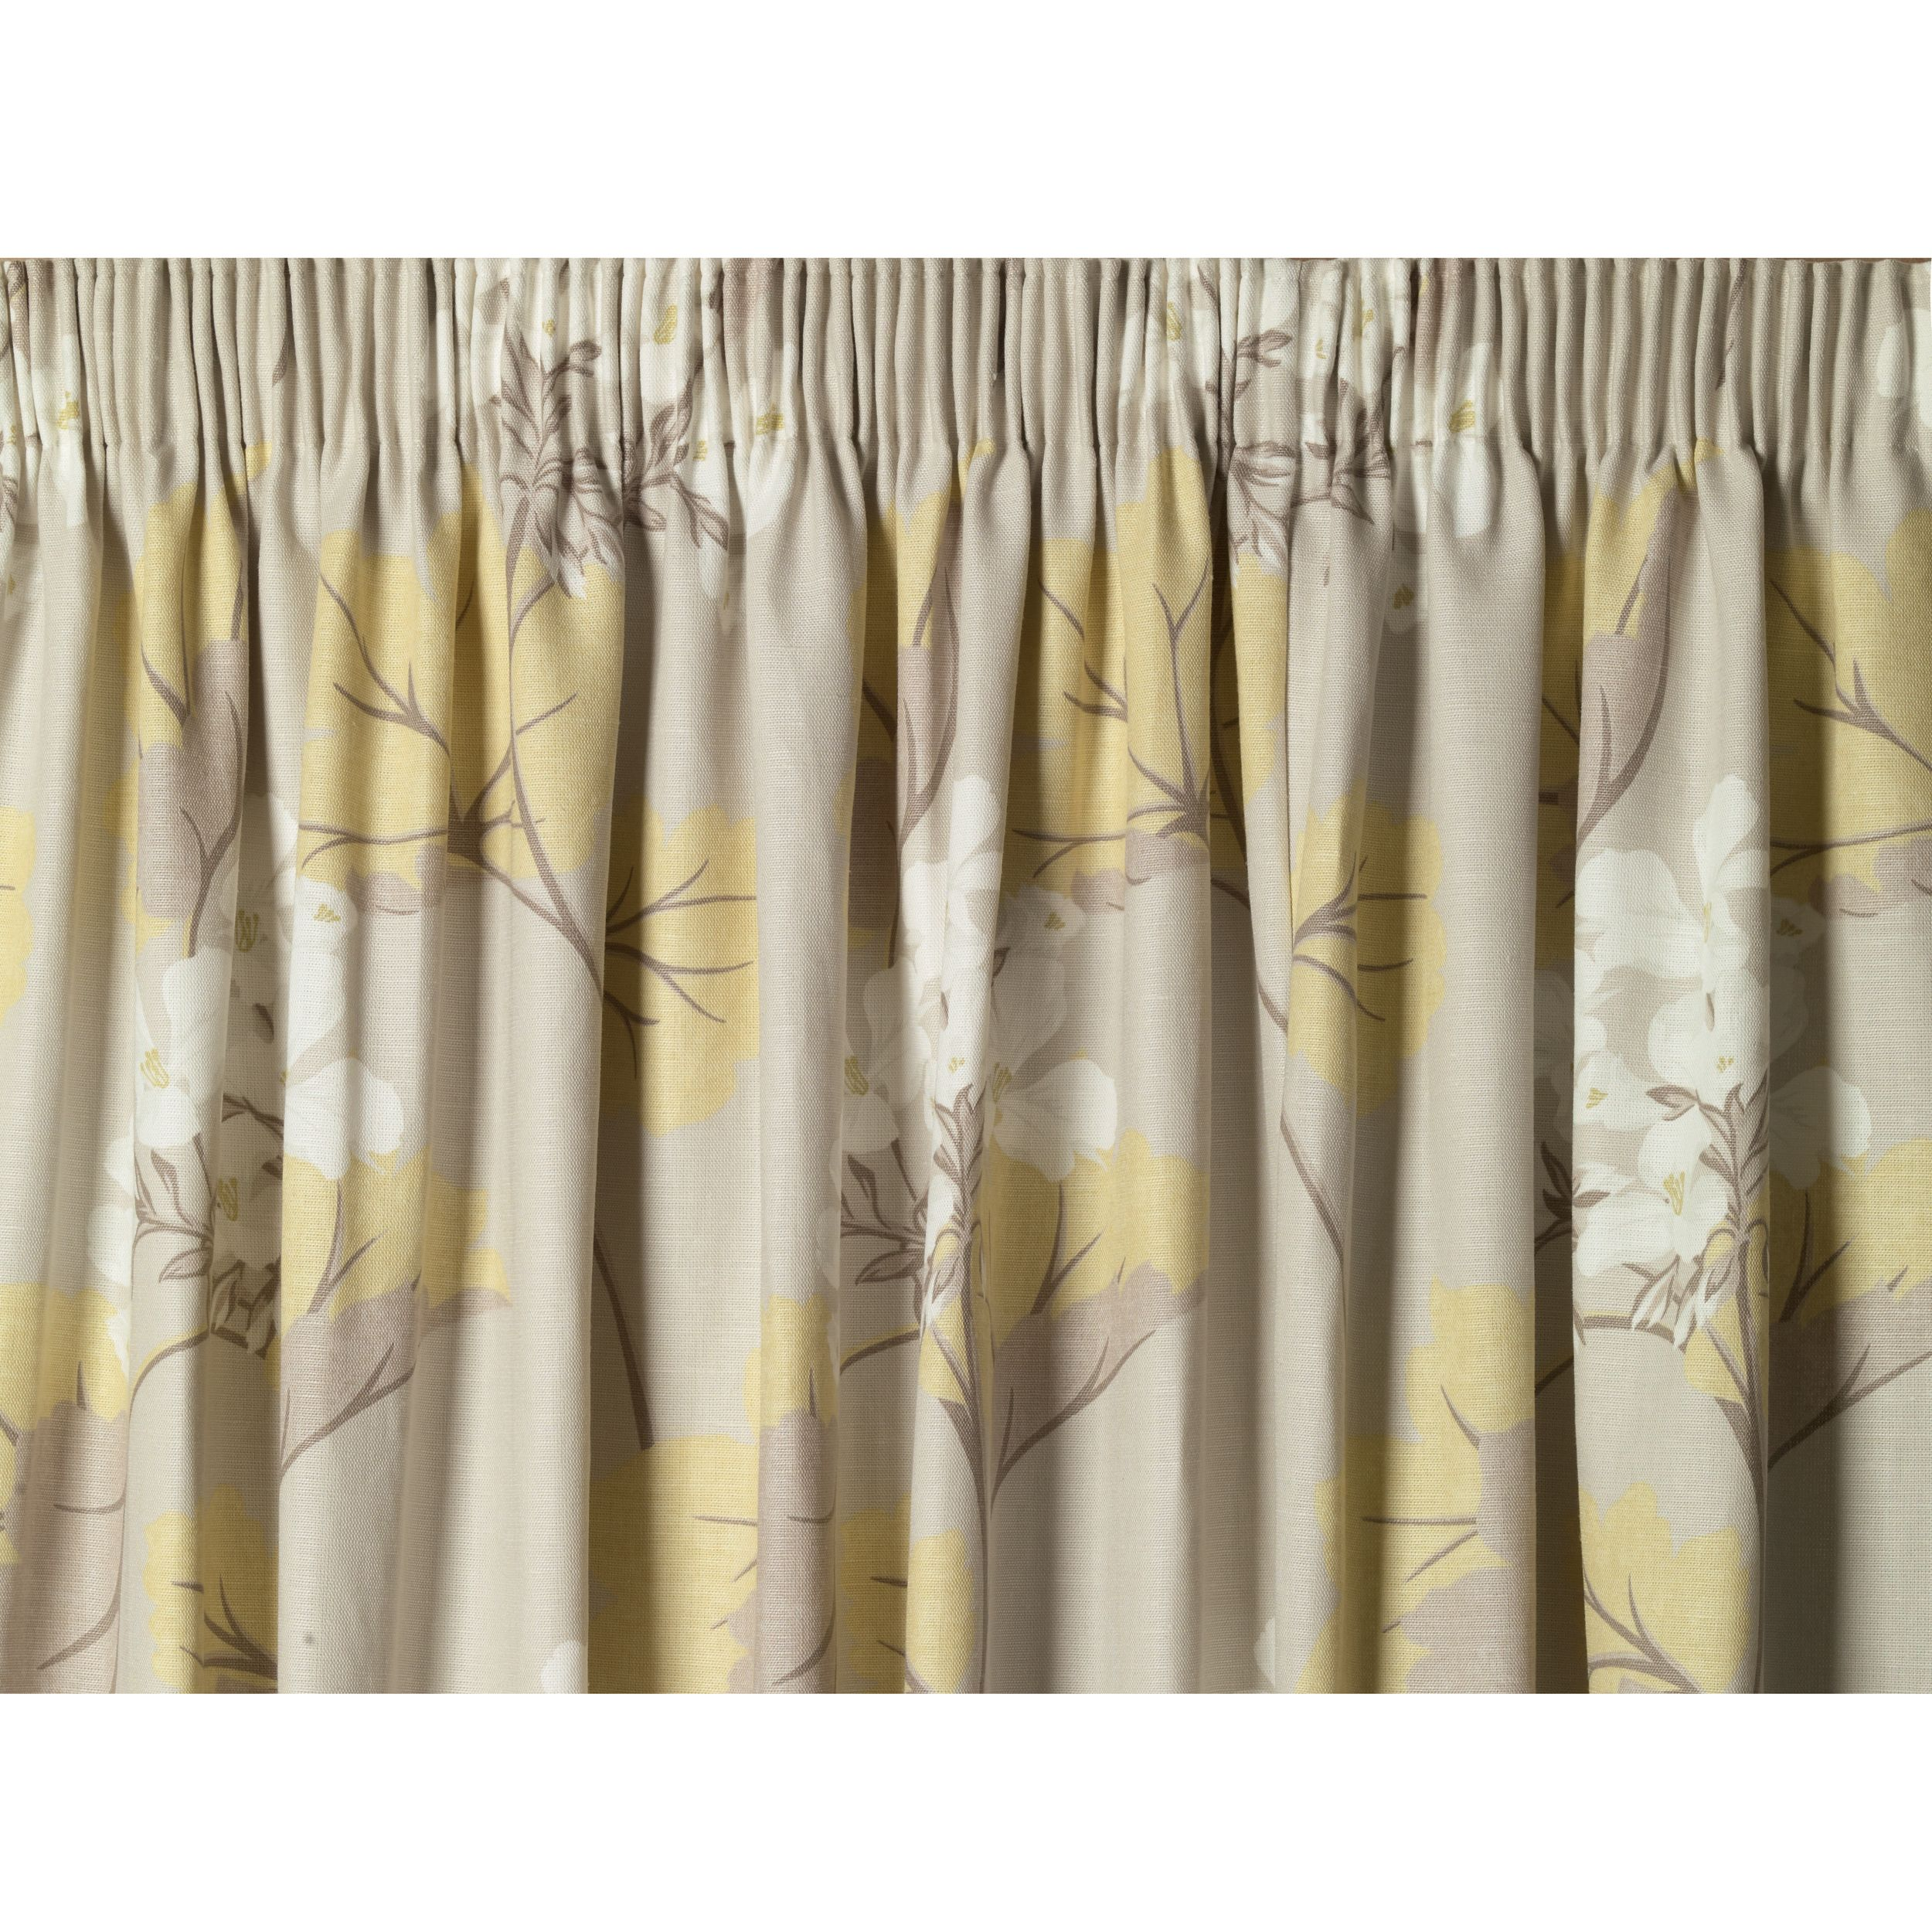 Ordered These Laura Ashley Curtains For My Living Room